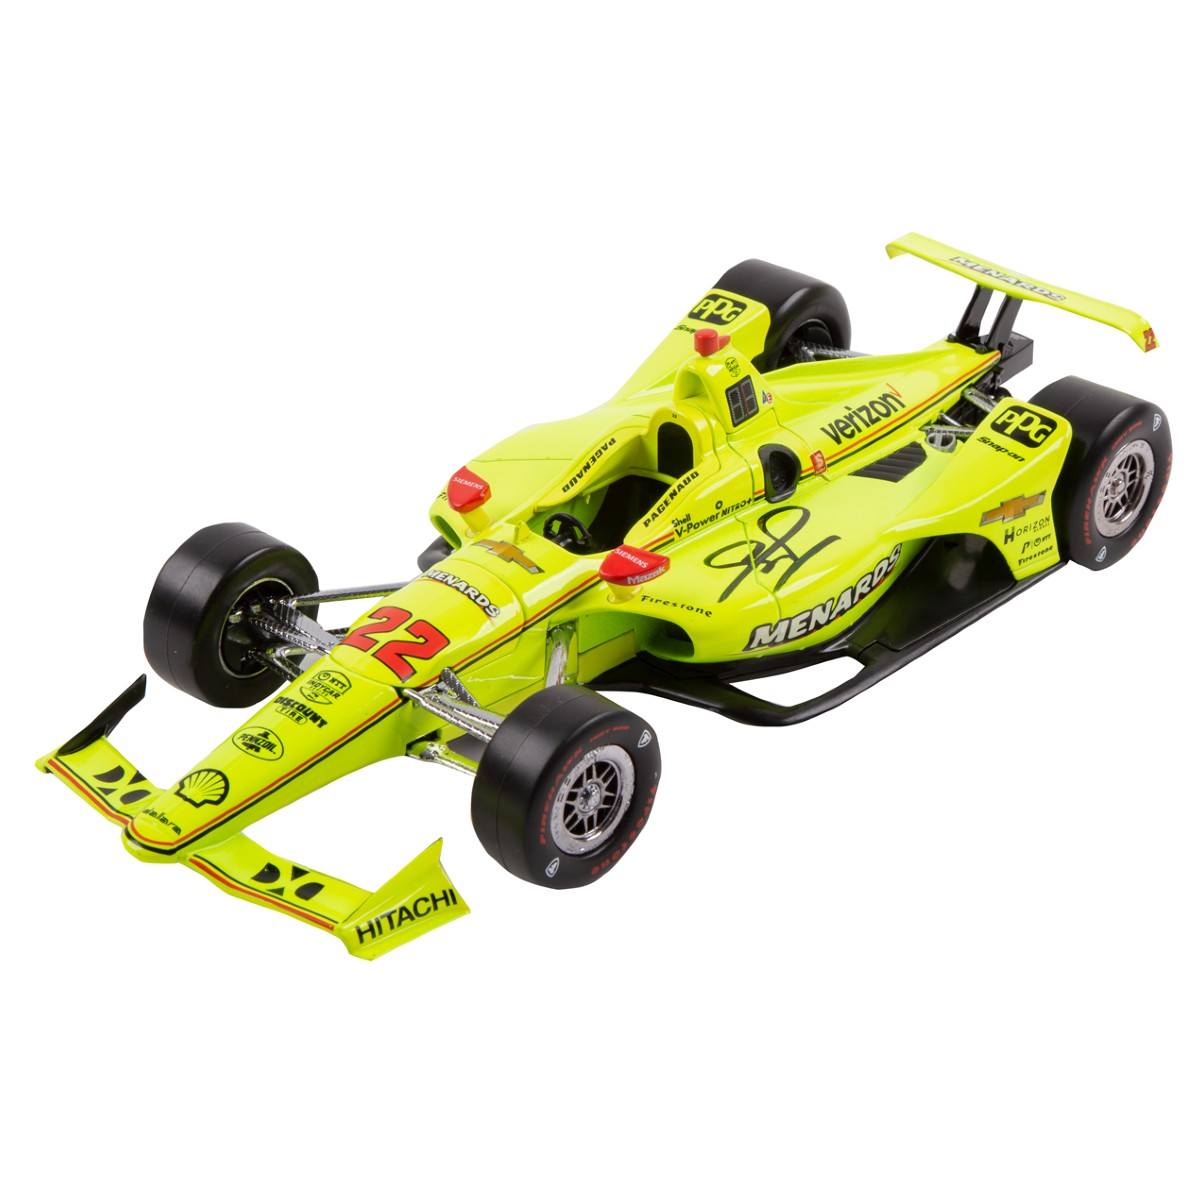 Autographed Simon Pagenaud 2019 Indy 500 Champion 1:18 Scale Diecast